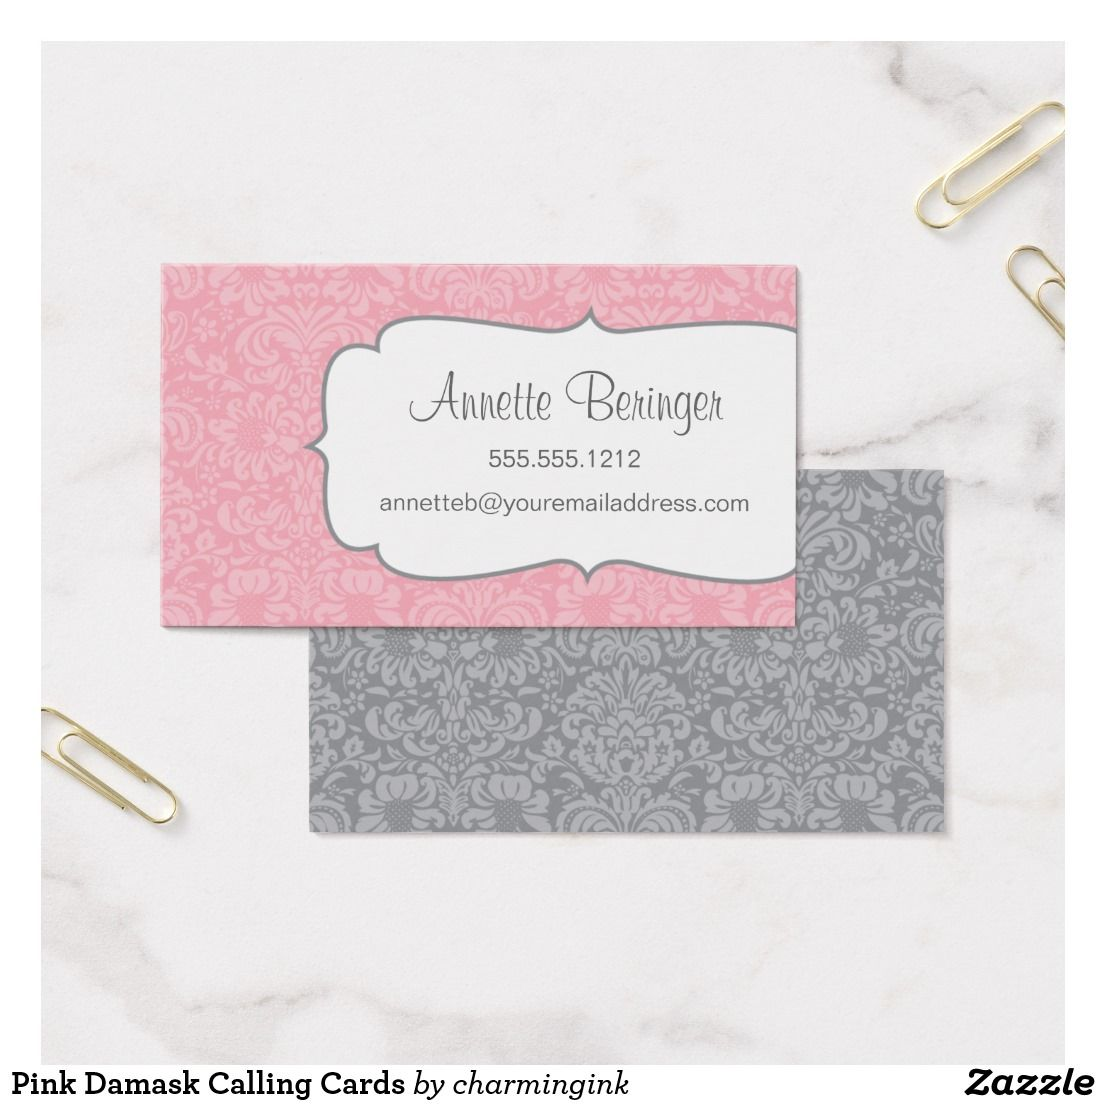 Pink damask calling cards business pinterest pink damask and pink damask calling cards reheart Gallery